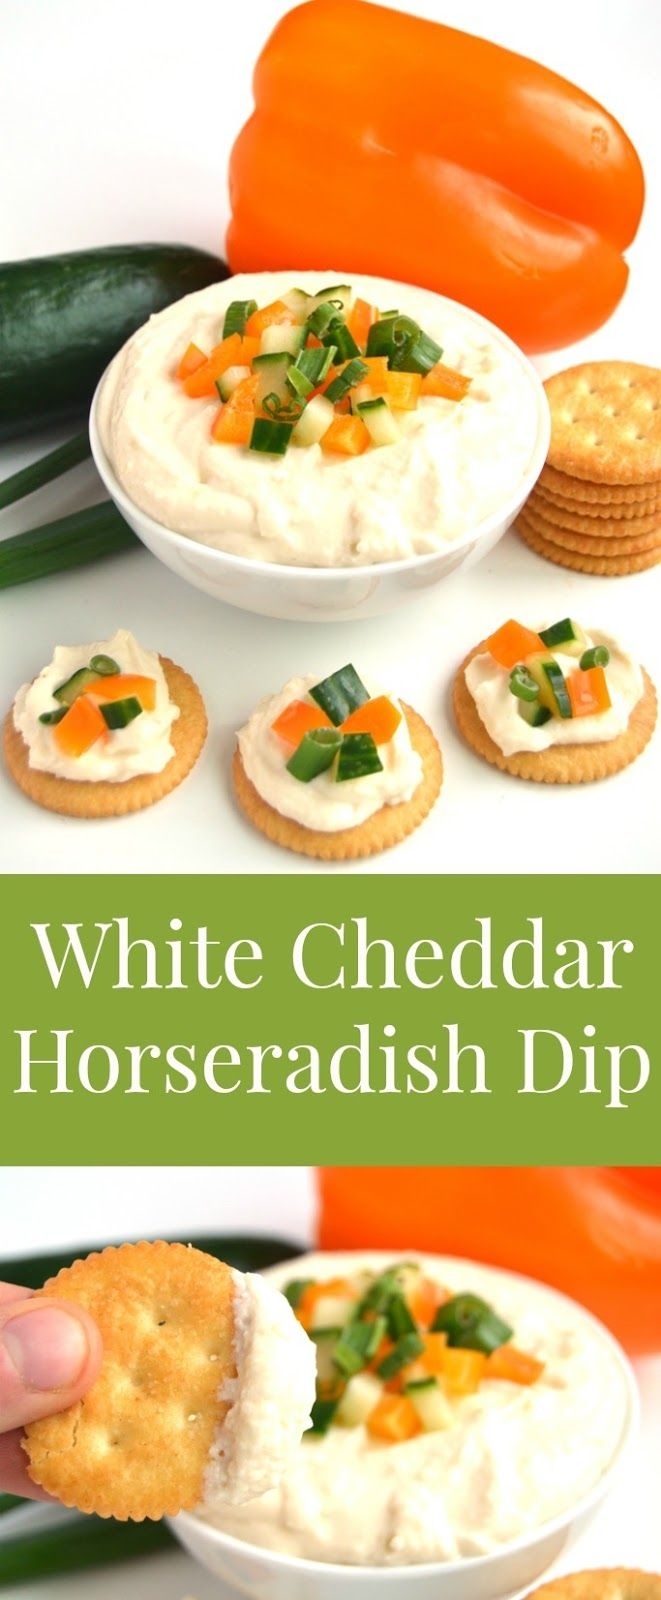 White Cheddar Horseradish Dip is ready in 5 minutes, has just 4 ingredients and is full of flavor with sharp white cheddar cheese and tangy horseradish! Topped with finely diced vegetables and served with crackers for an easy appetizer. www.nutritionistreviews.com #FamilyRITZpiration #ad